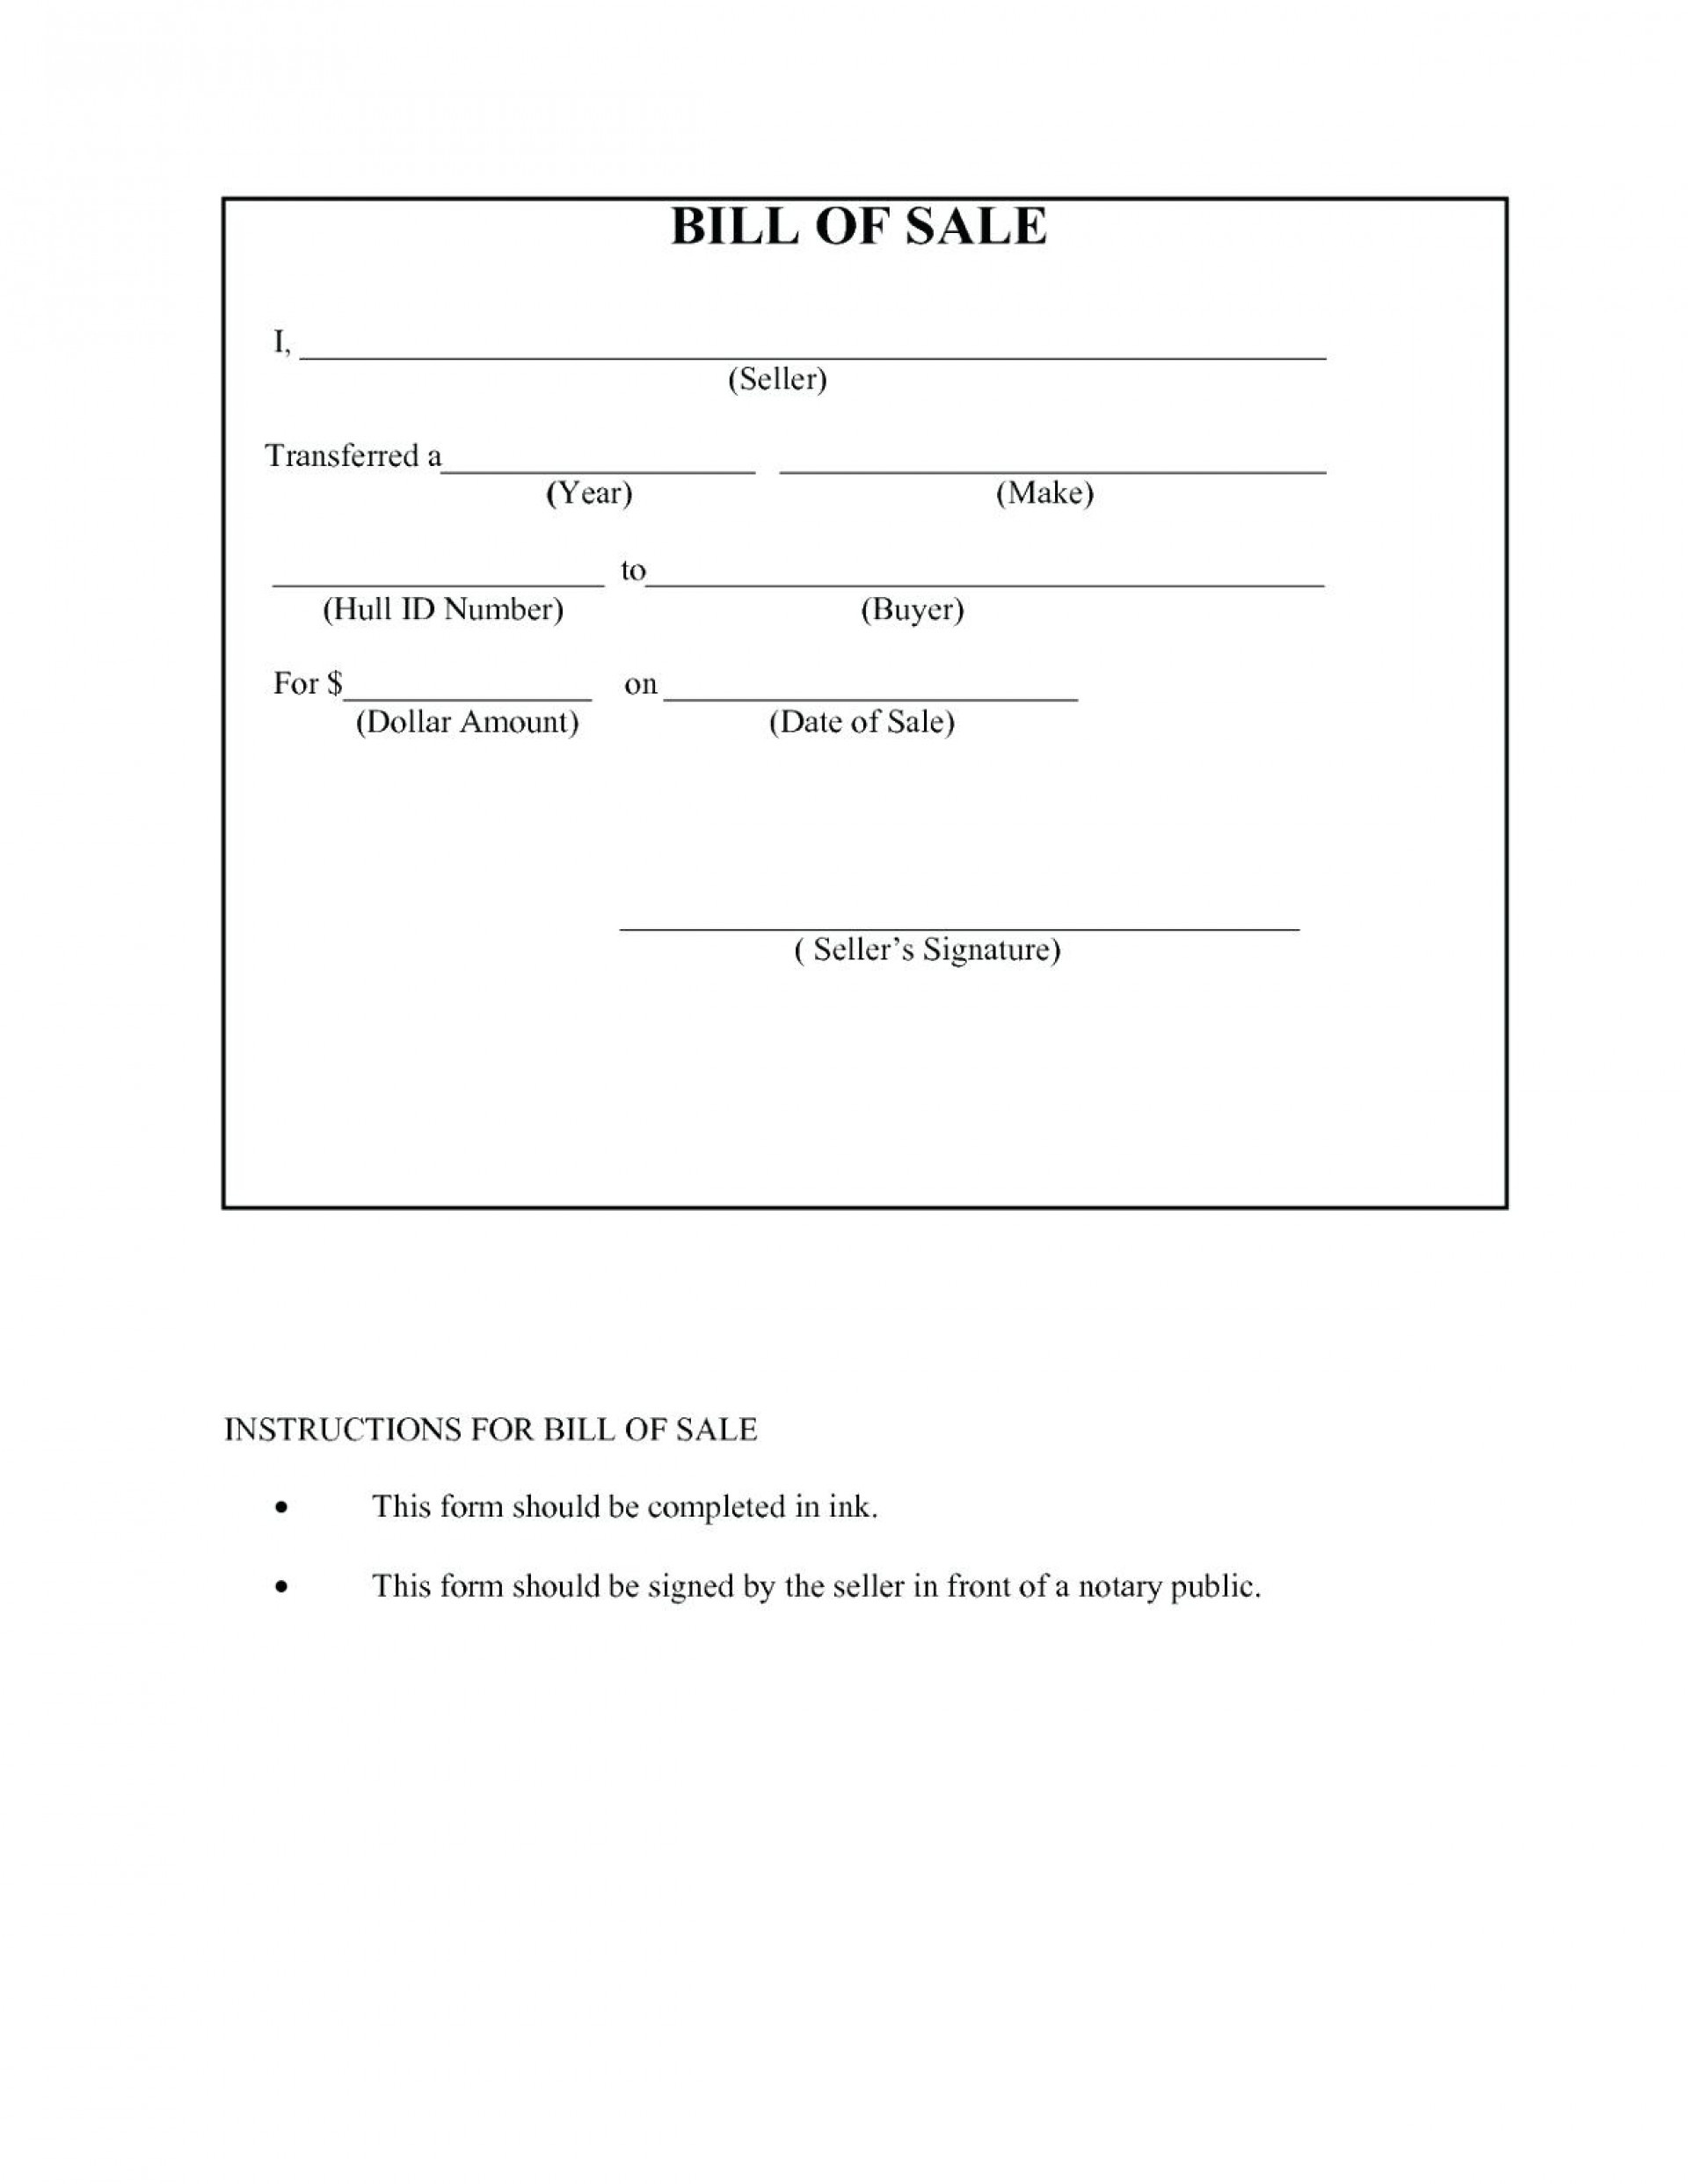 021 Free Printable Bill Of Sale Form Template New Best For Car Boat - Free Printable Bill Of Sale